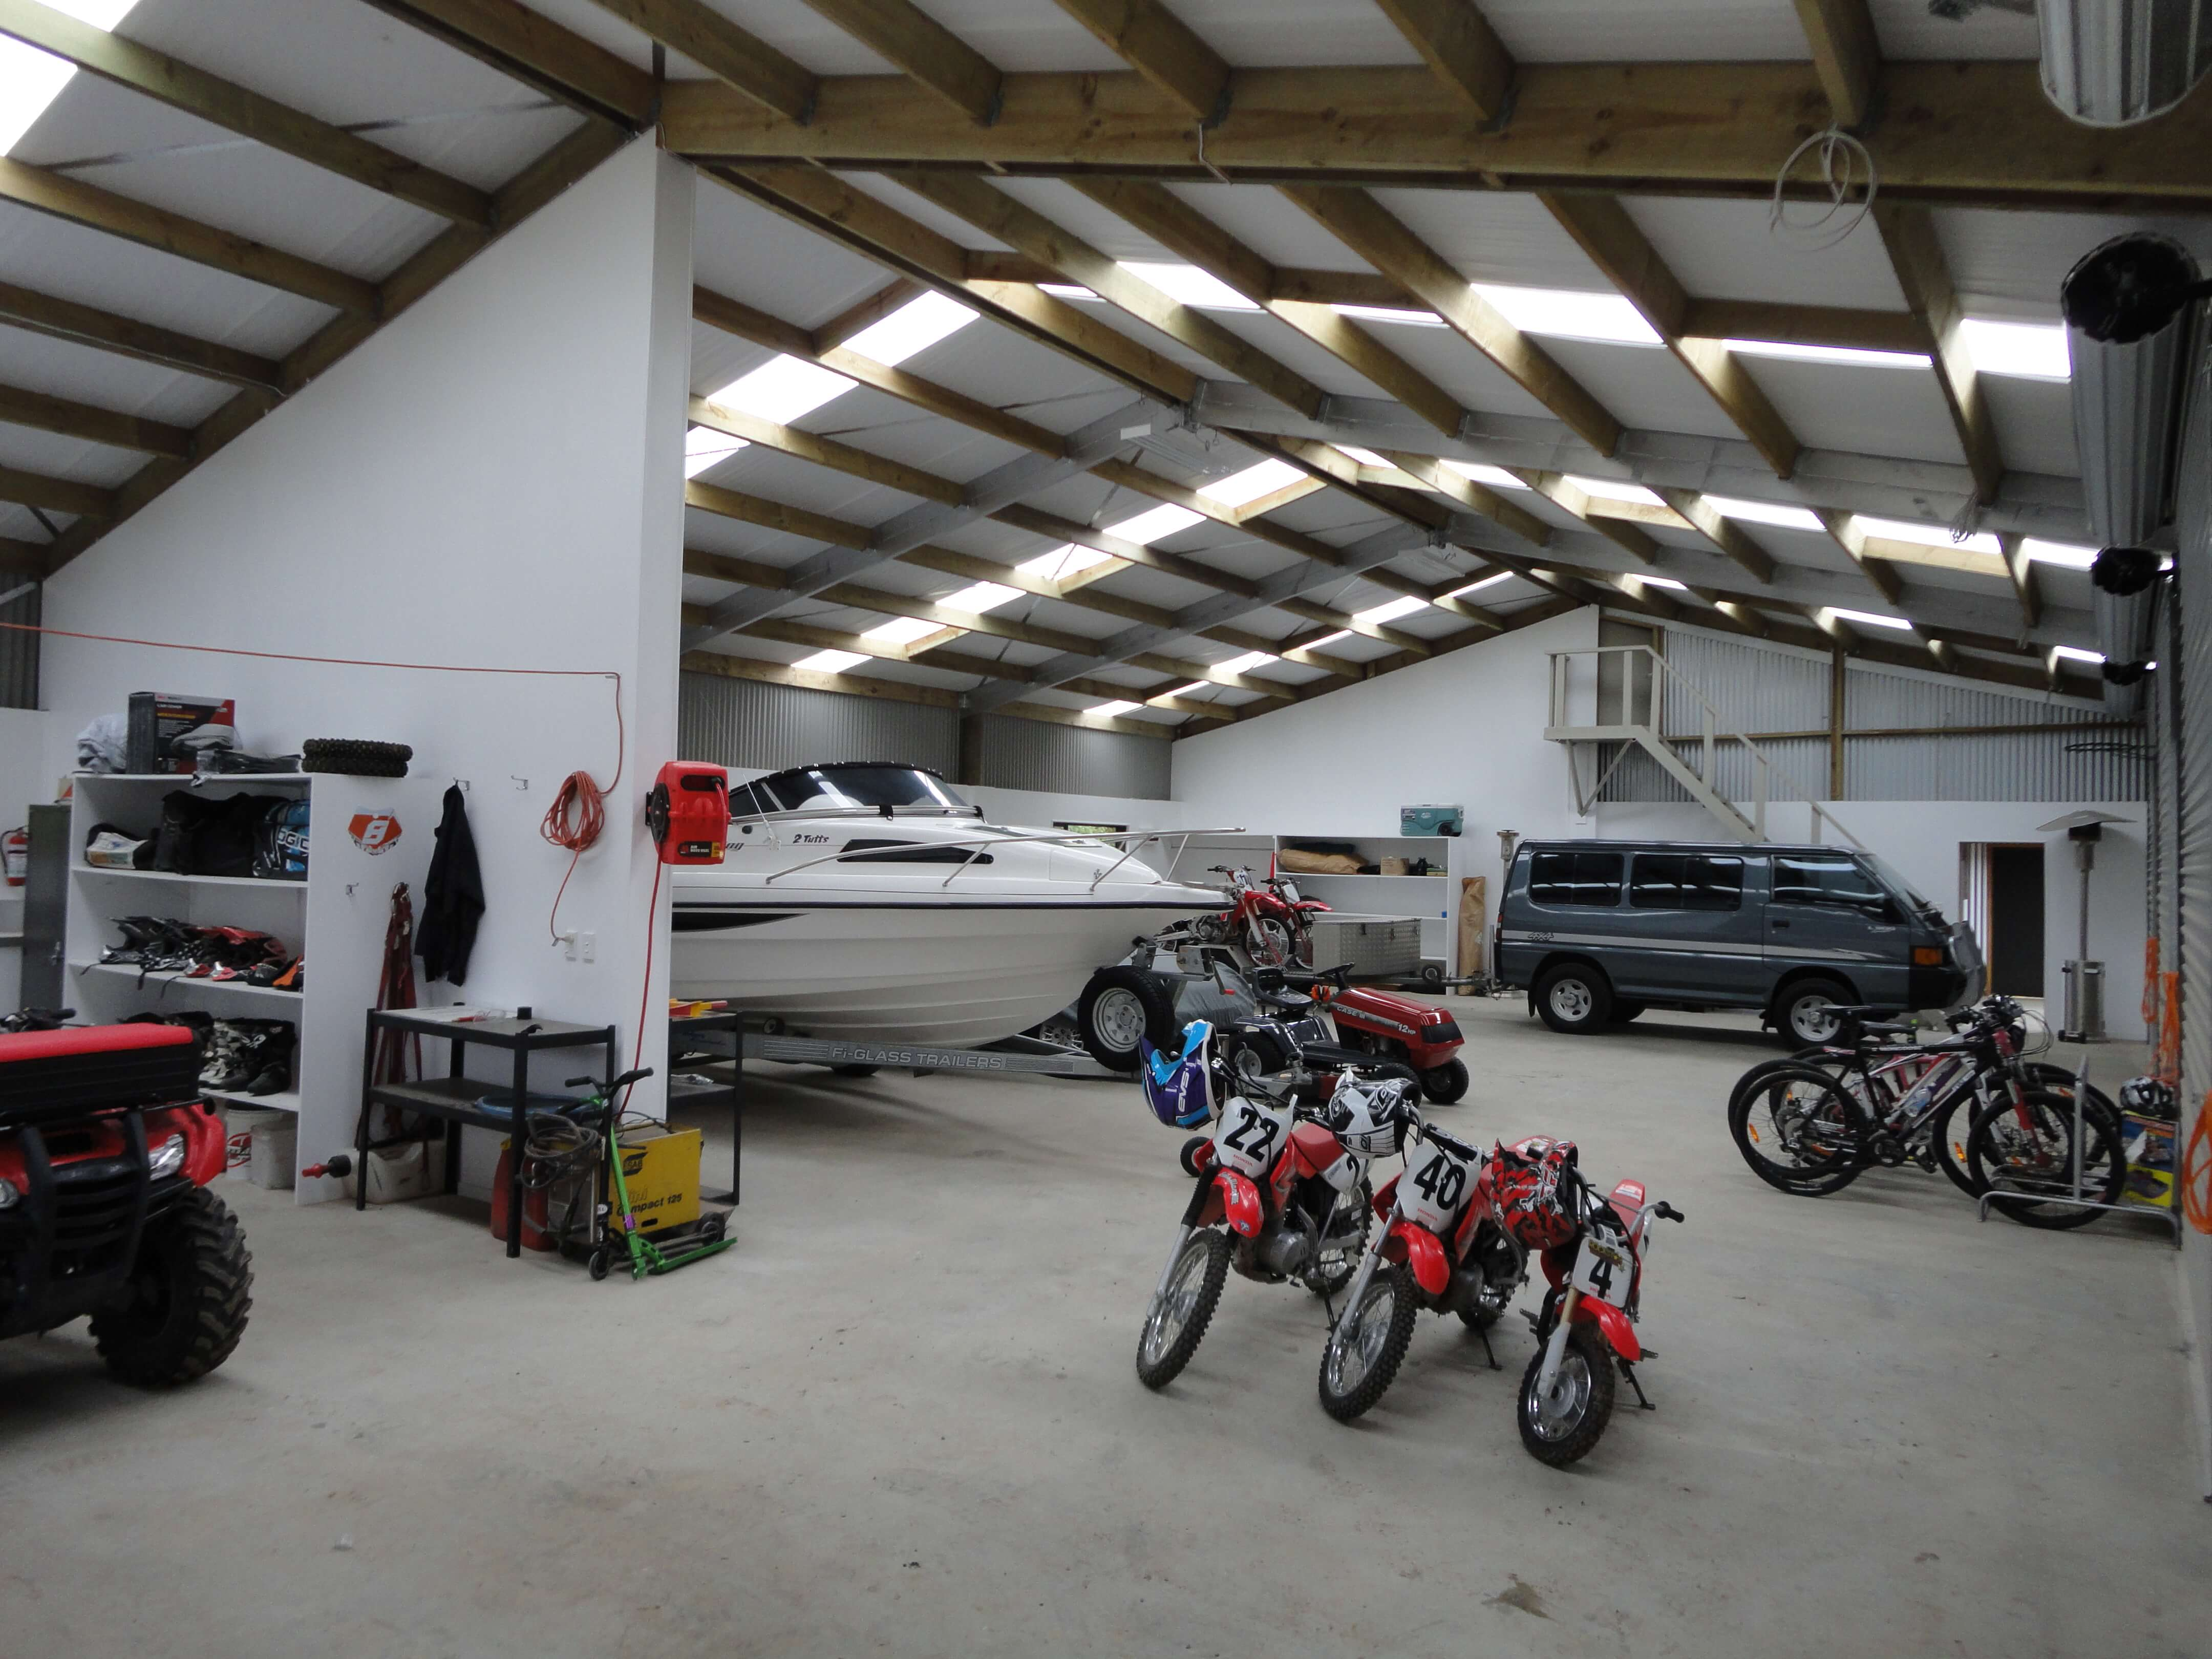 Shed for storing motorcycles and boats